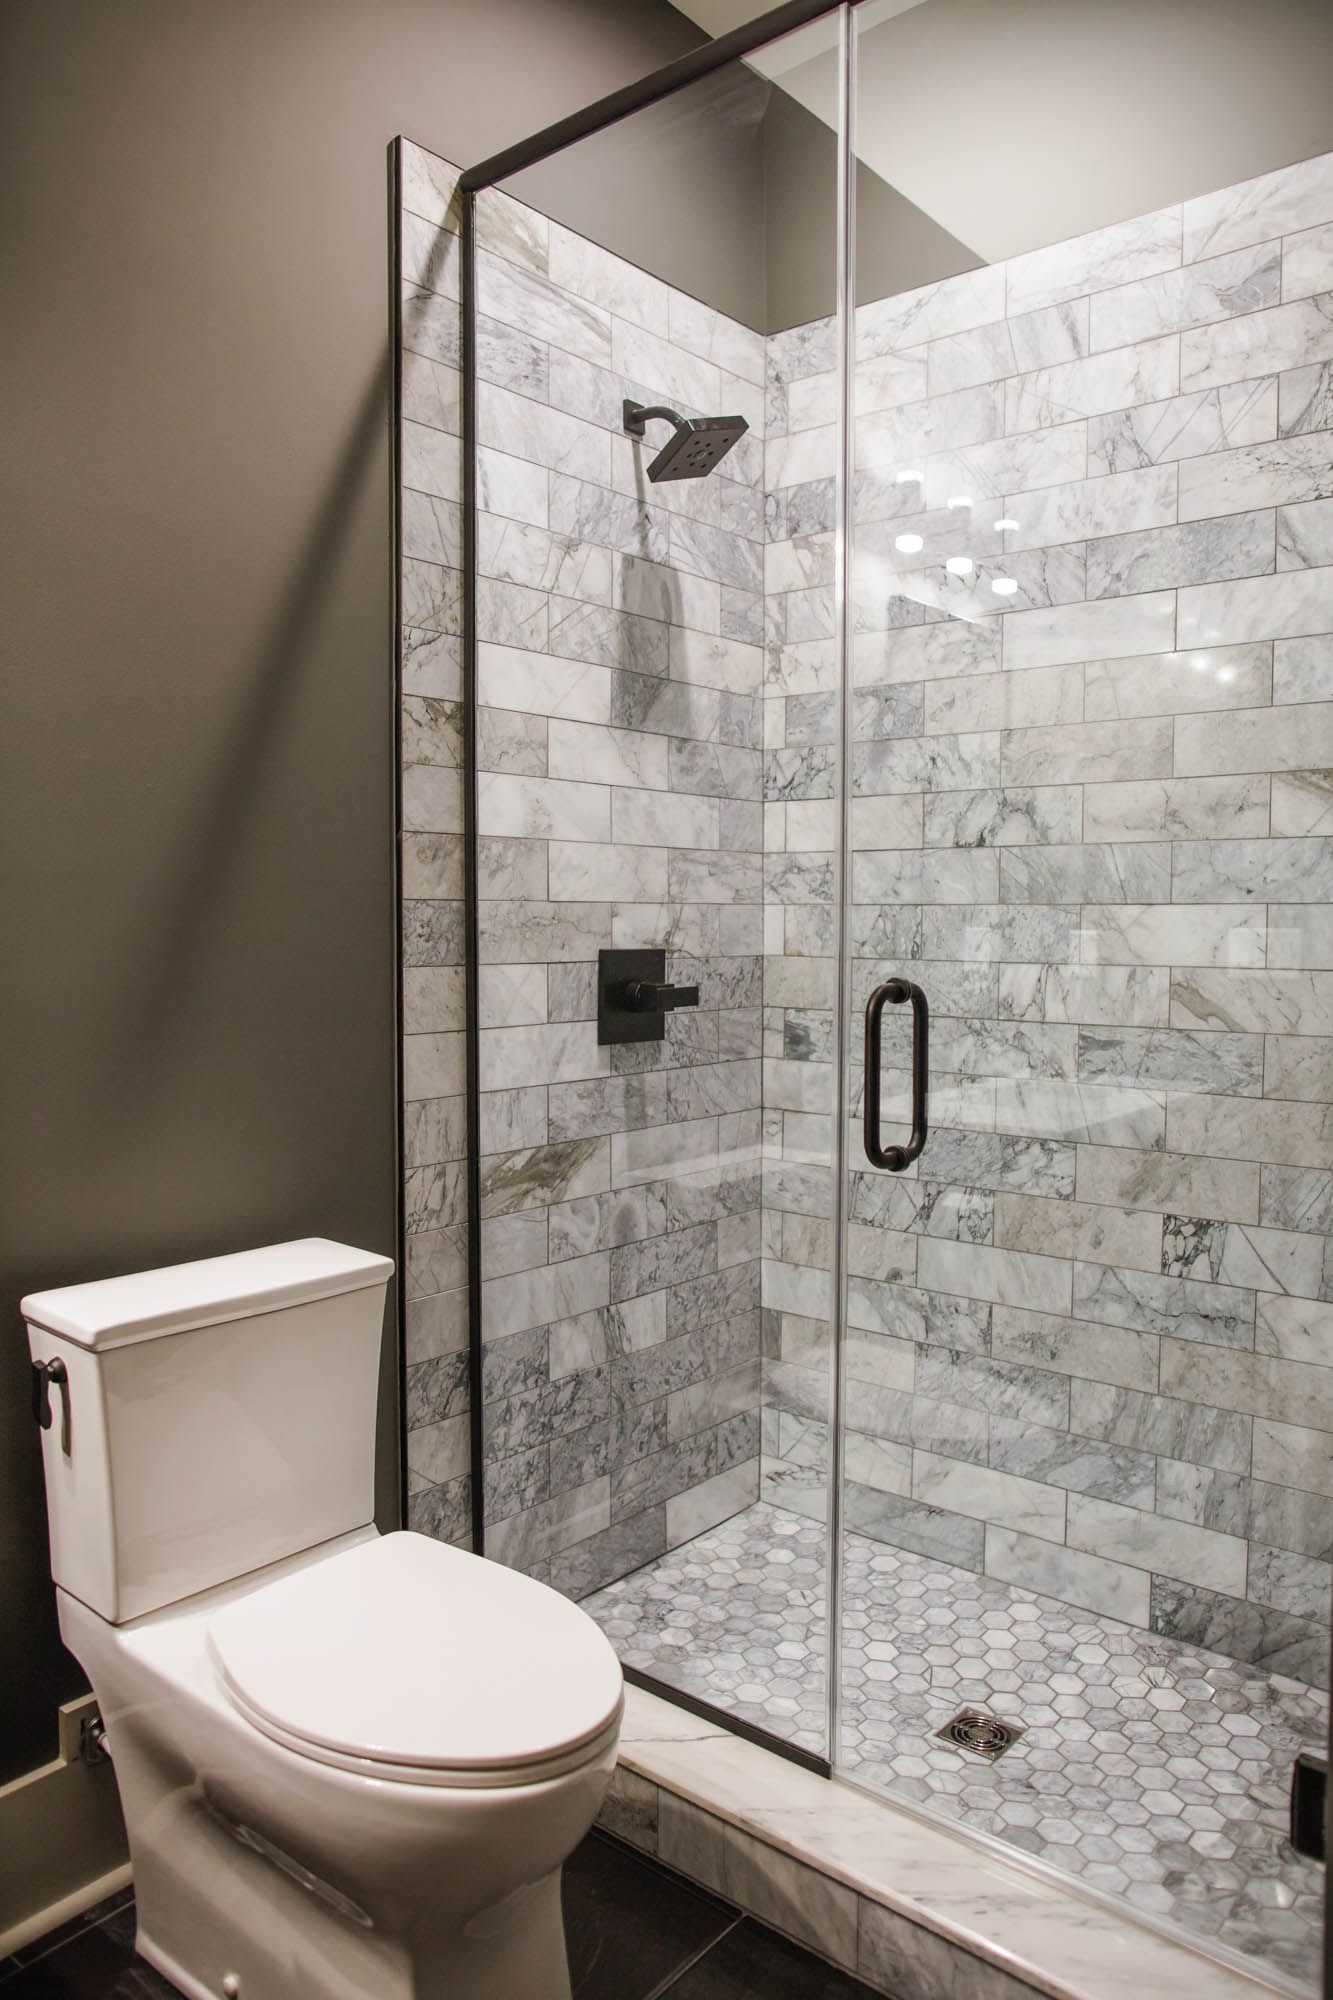 Marble Tiled Shower The Tile Shop Cristin Cooper Explore All The